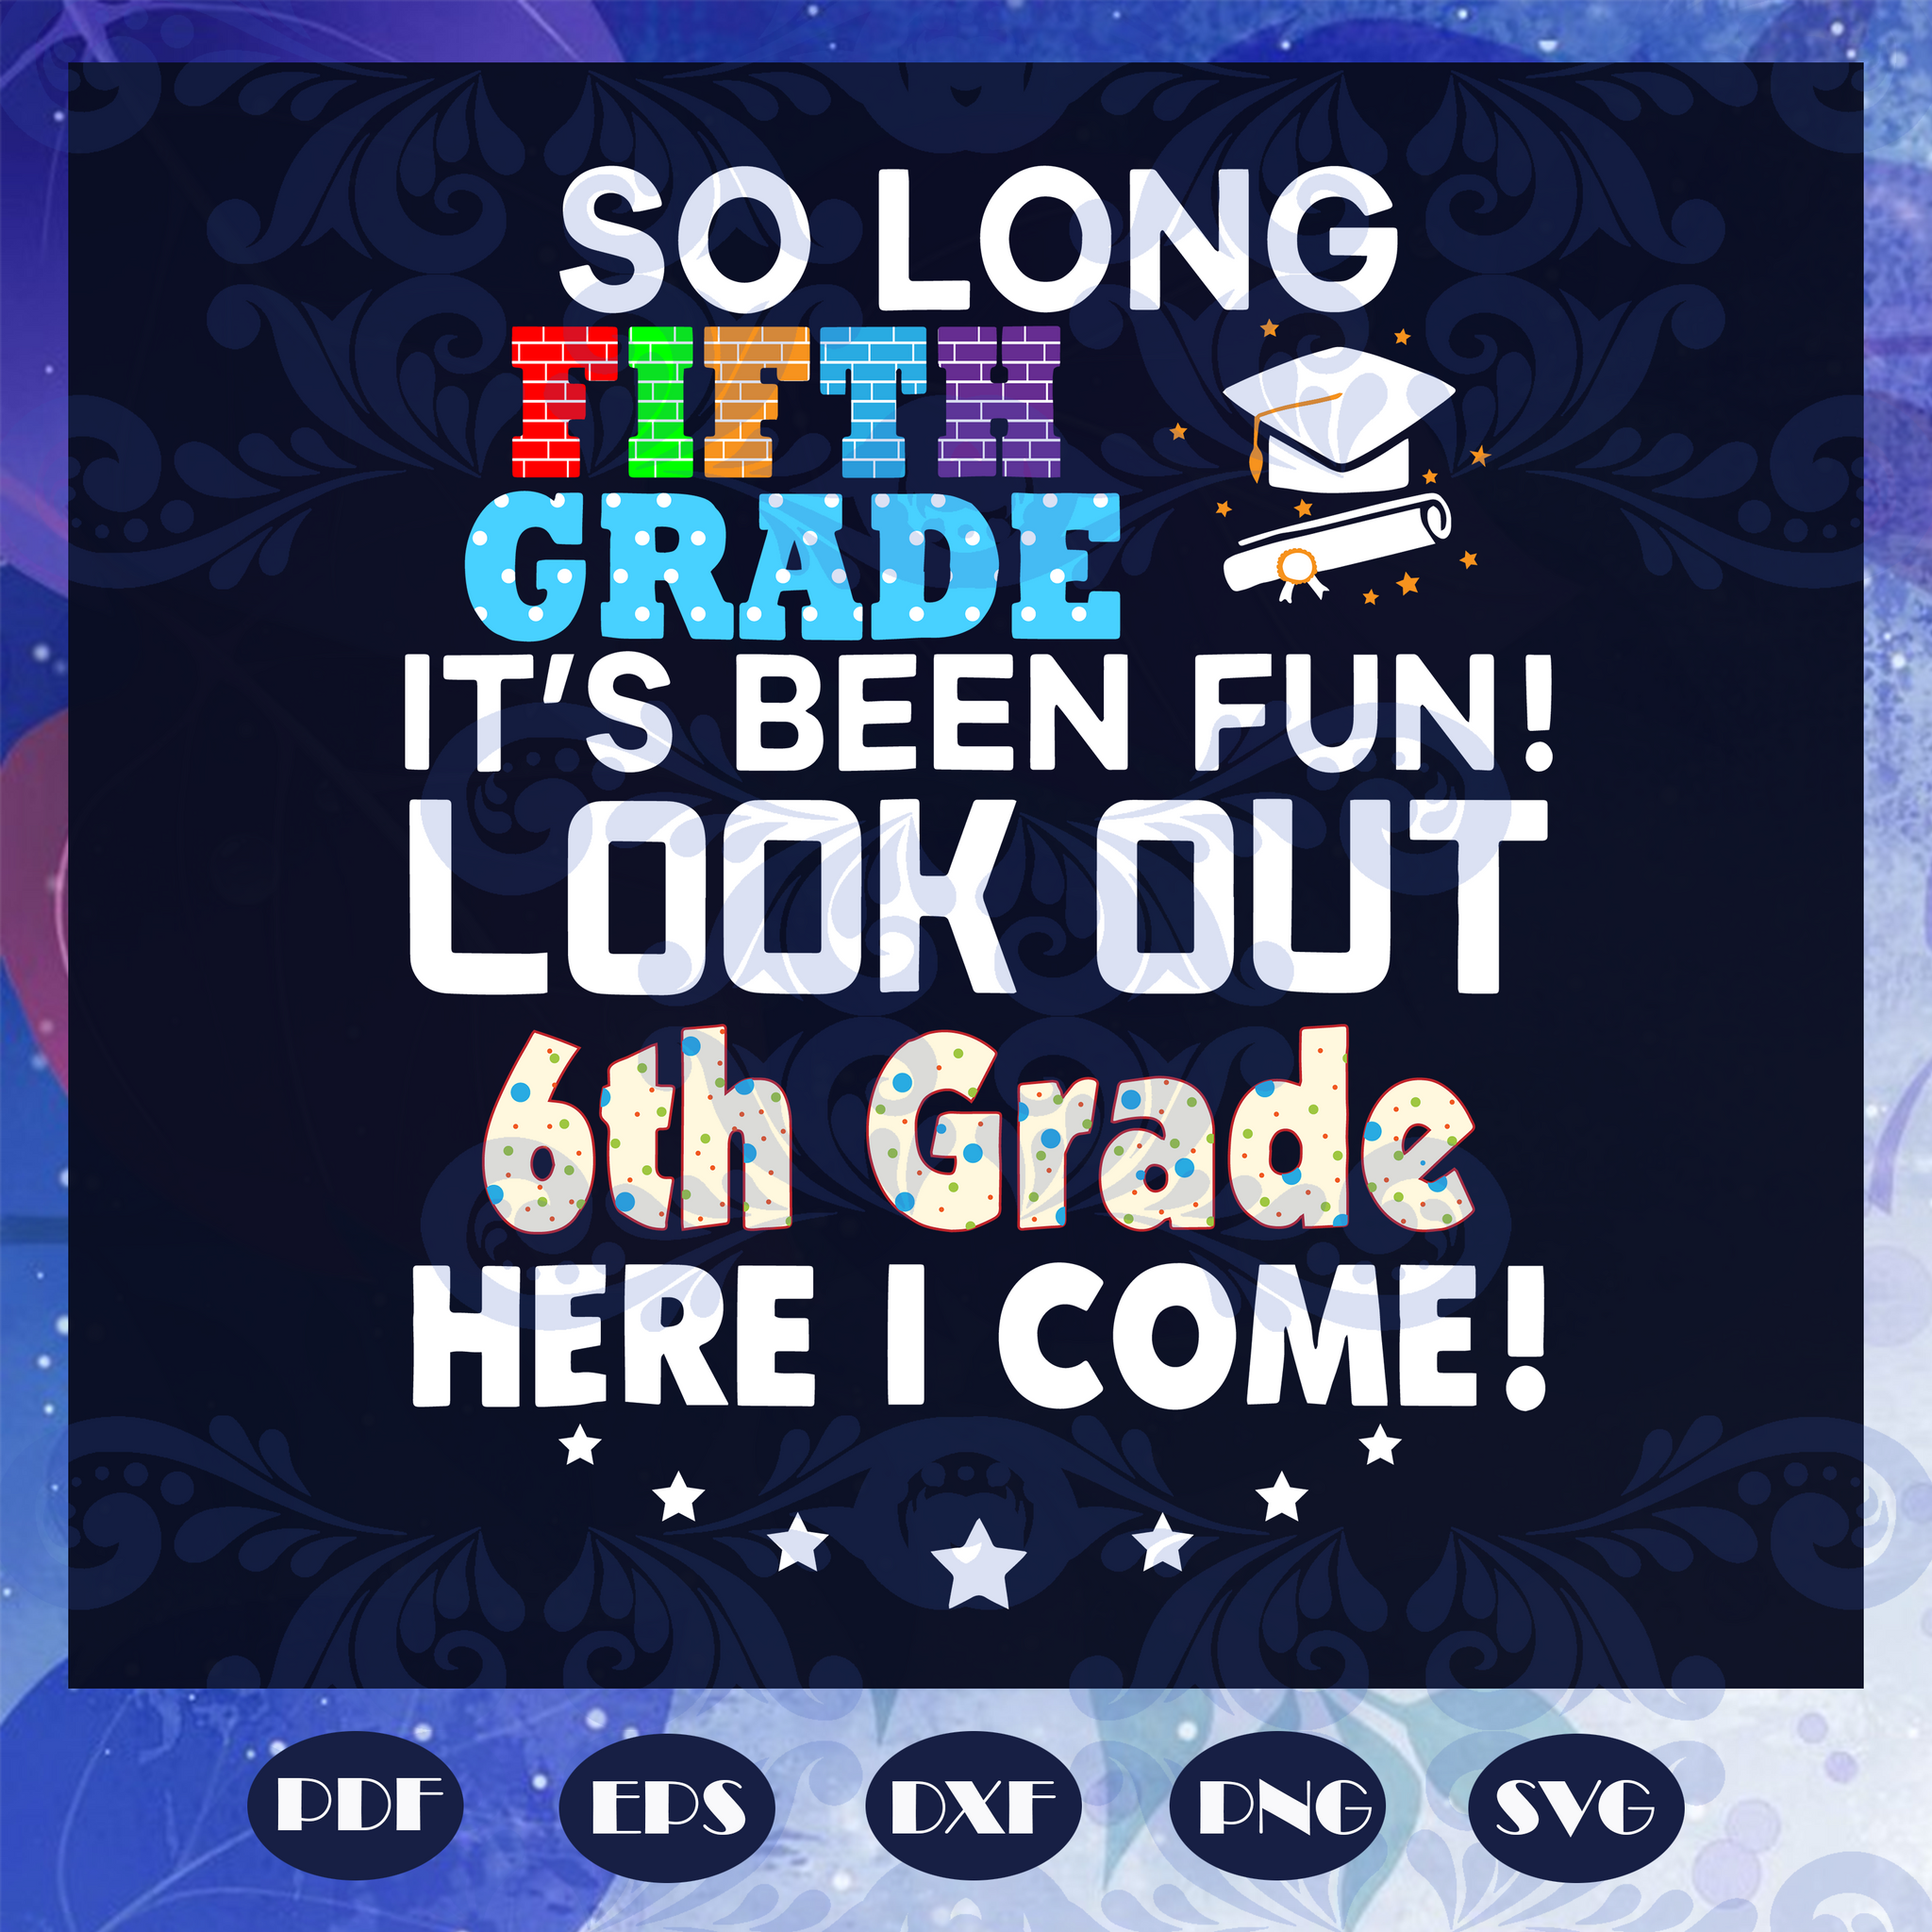 So Long Fifth Grade It's Been Fun Svg, Look Out 6th Grade Here I Come Svg, Last Day 5th Grade Svg, Graduation Svg, 6th Grade Svg, Graduation 2020 Svg, Files For Silhouette, Files For Cricut, SVG, DXF, EPS, PNG, Instant Download